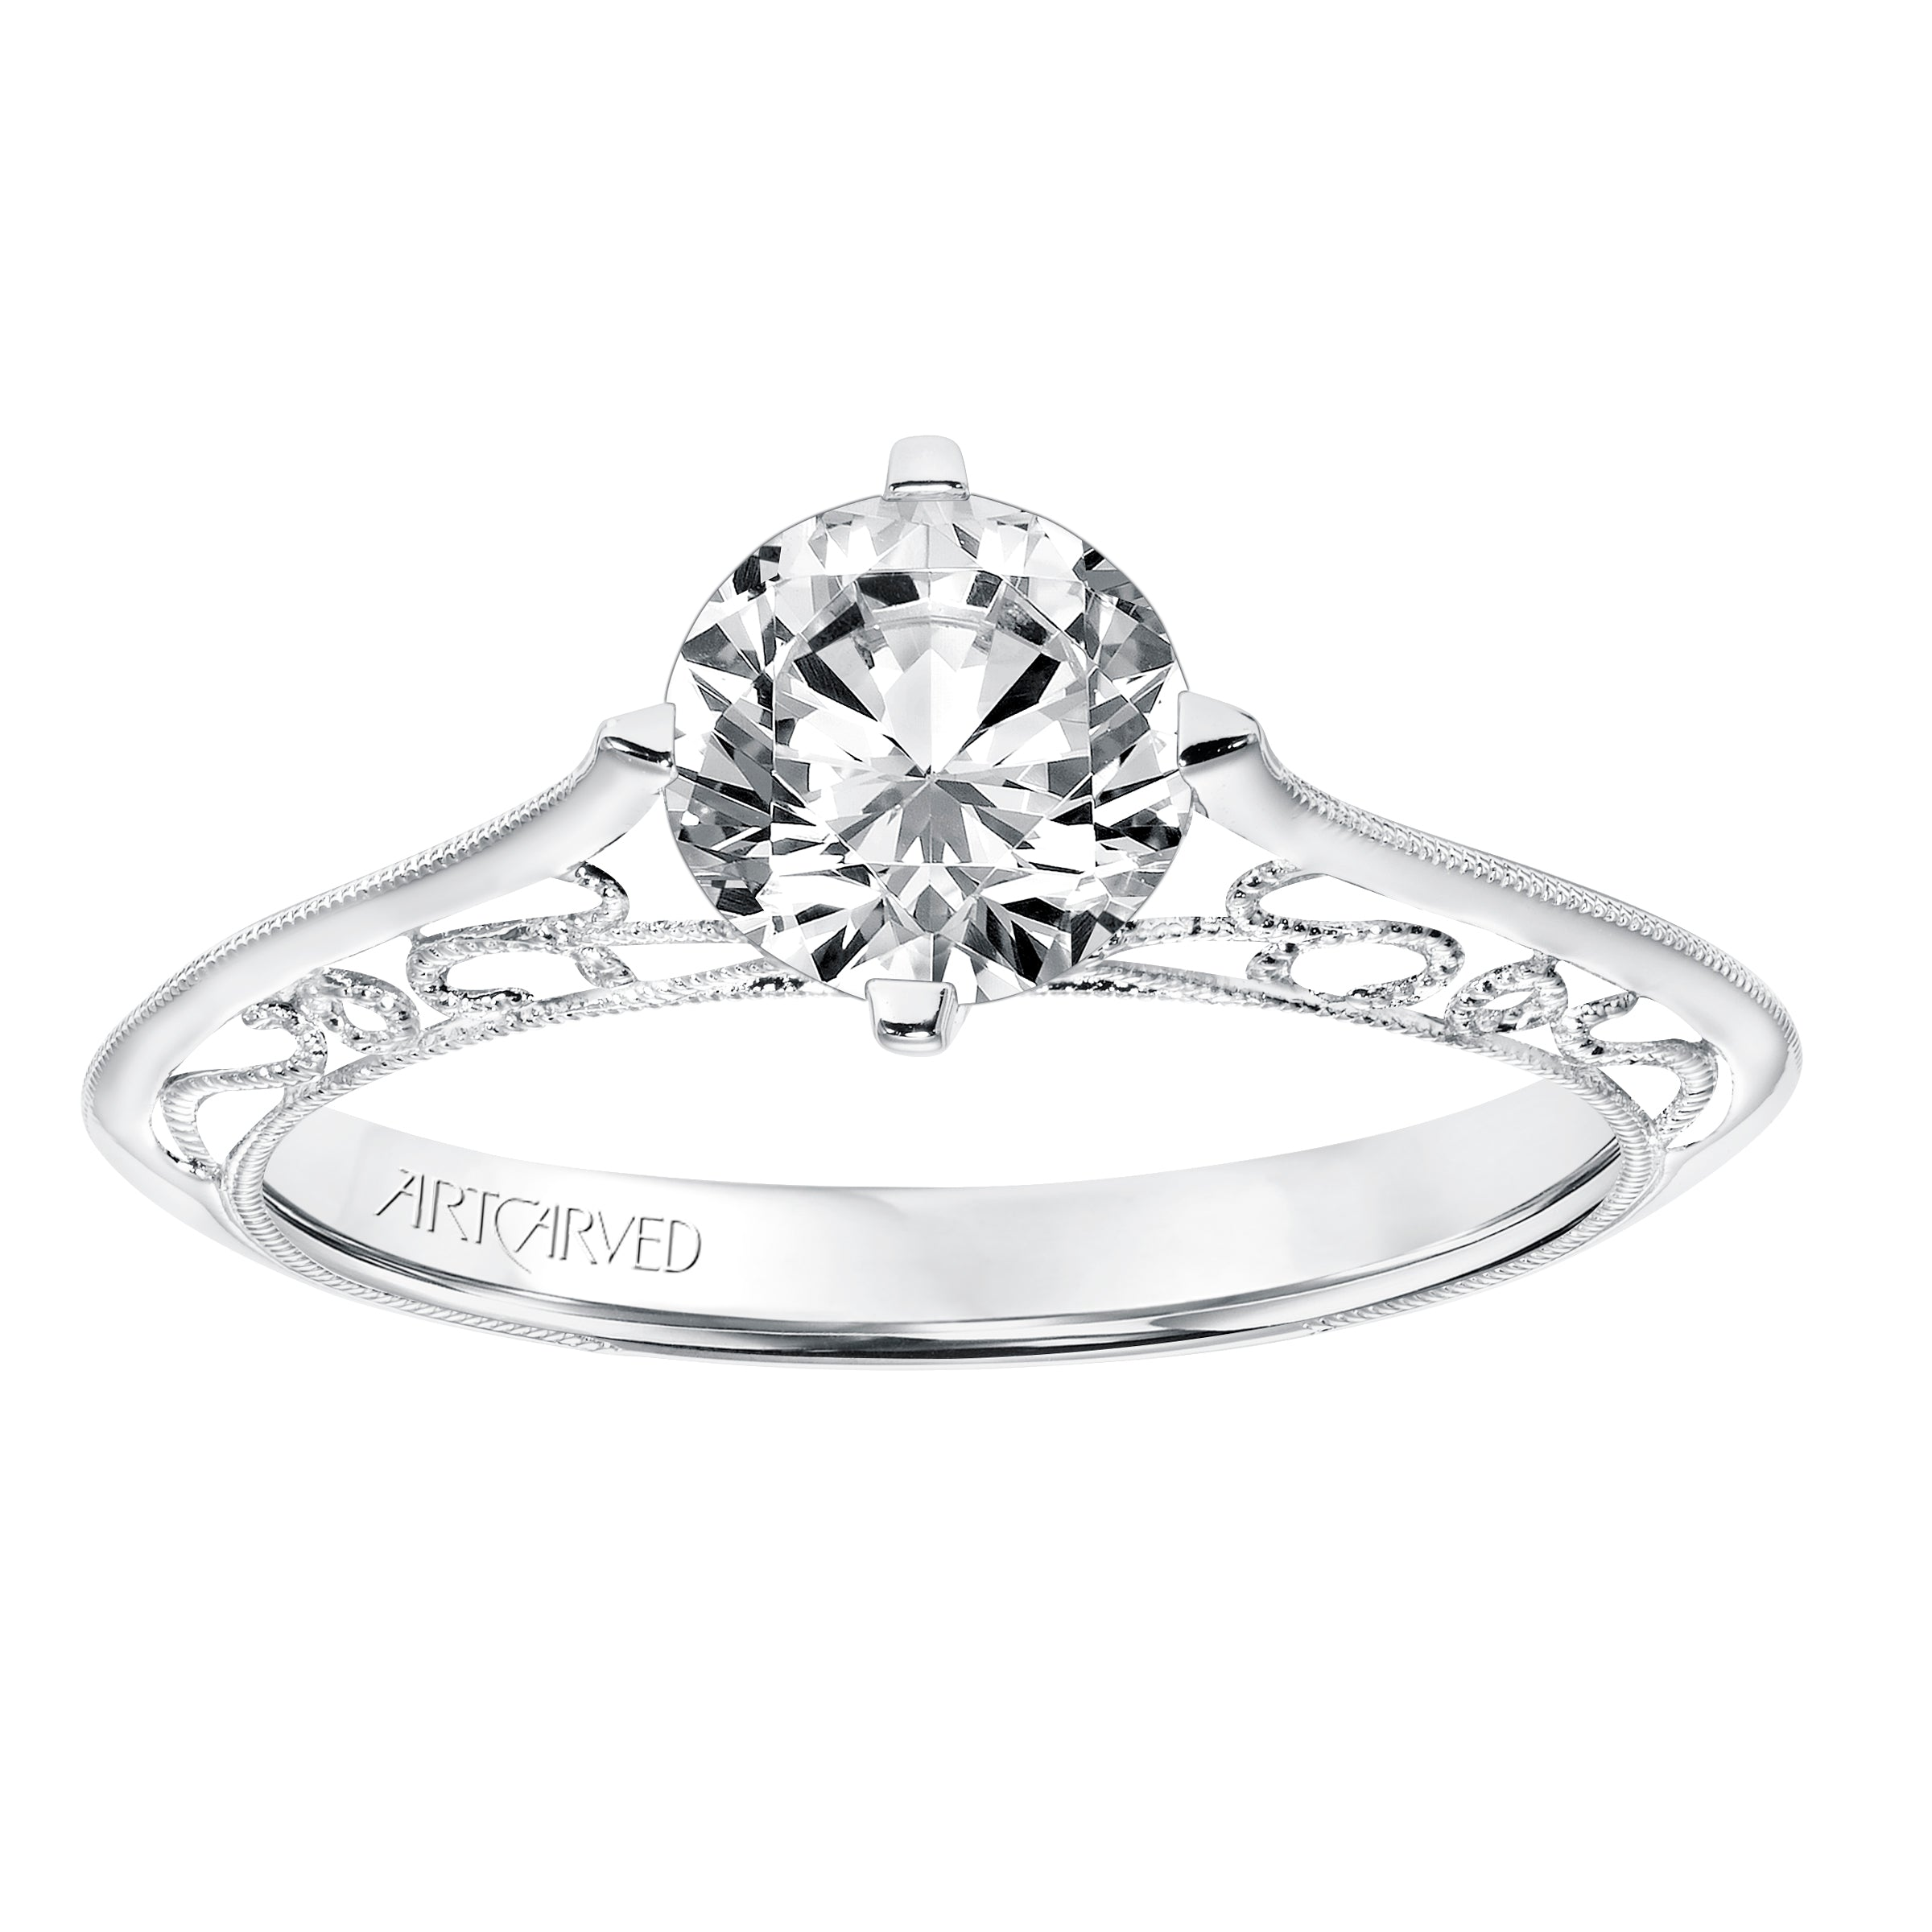 rings white gold product shop stone diamond solitaire forever engagement ring two us carat rakuten